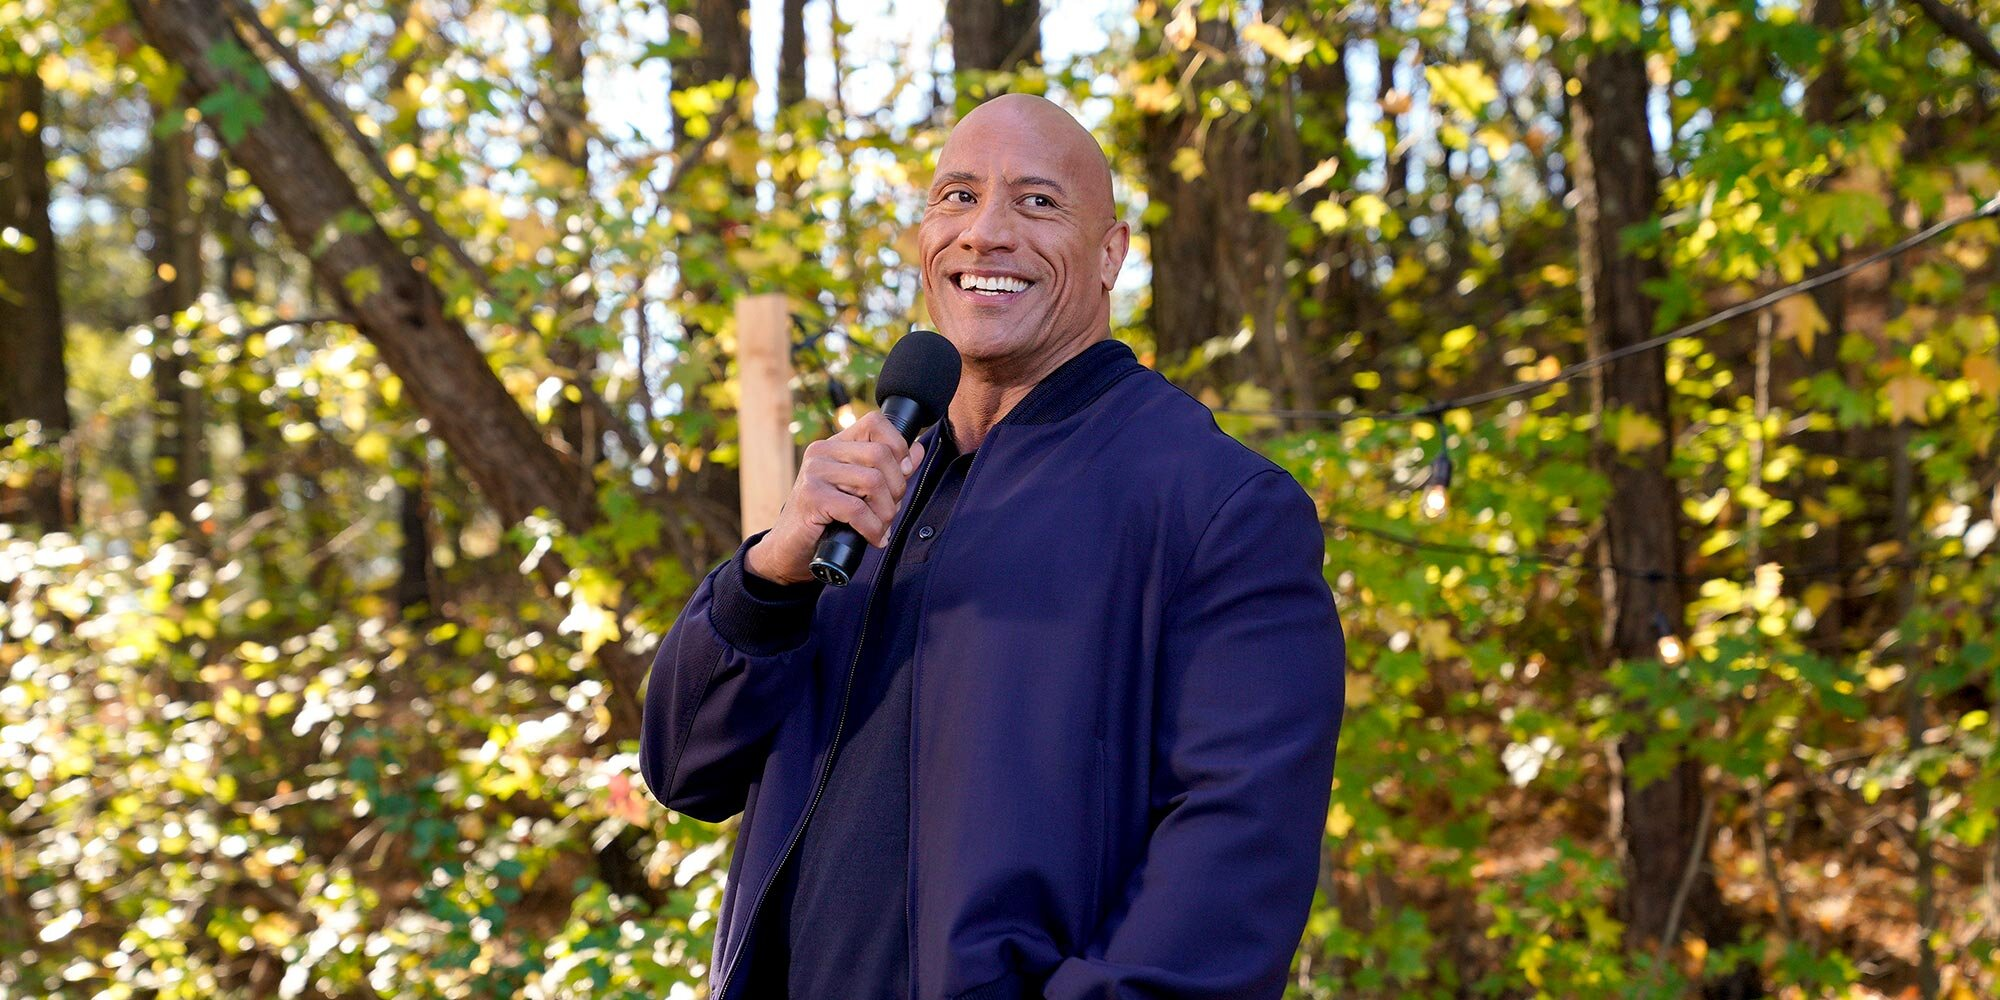 Dwayne Johnson responds to poll suggesting strong support for his presidential bid: 'It'd be my honor to serve the people'.jpg